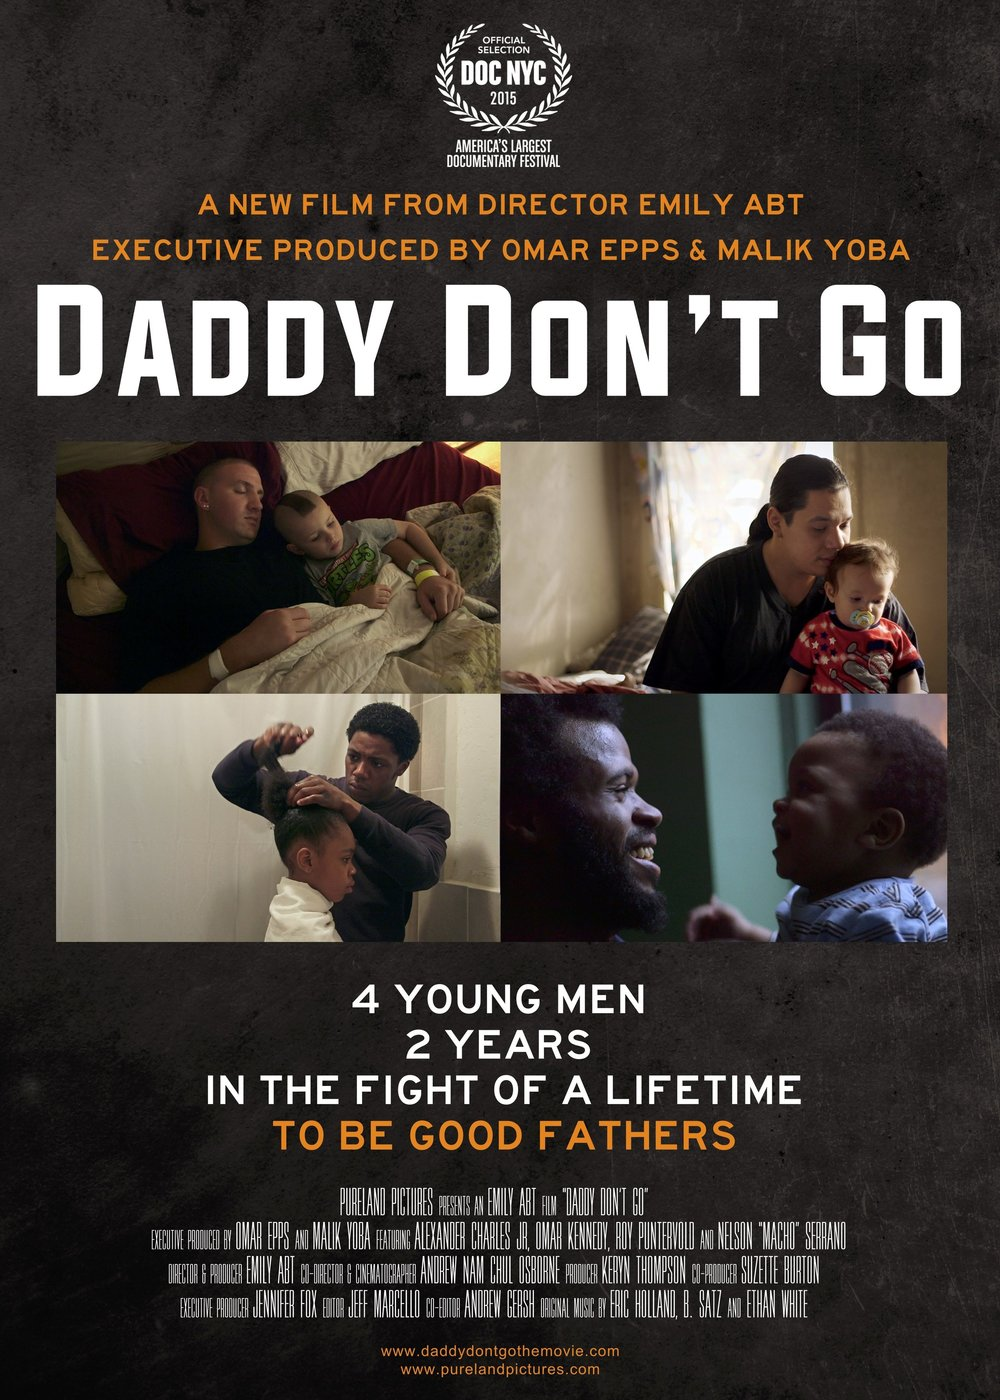 Daddy Don't Go - 2015, USA, 90 min, in EnglishDaddy Don't Go captures two years in the lives of four disadvantaged fathers in New York City as they fight to defy the odds against them. And the odds are real – men living in poverty are more than twice as likely to become absent fathers than their middle-class peers (U.S. Census Bureau).Daddy Don't Go is a tough but tender journey that aims to illuminate the everyday struggles of disadvantaged fathers. Alex, Nelson, Roy and Omar shatter the deadbeat dad stereotype and redefine what it means to be a good father for all men.